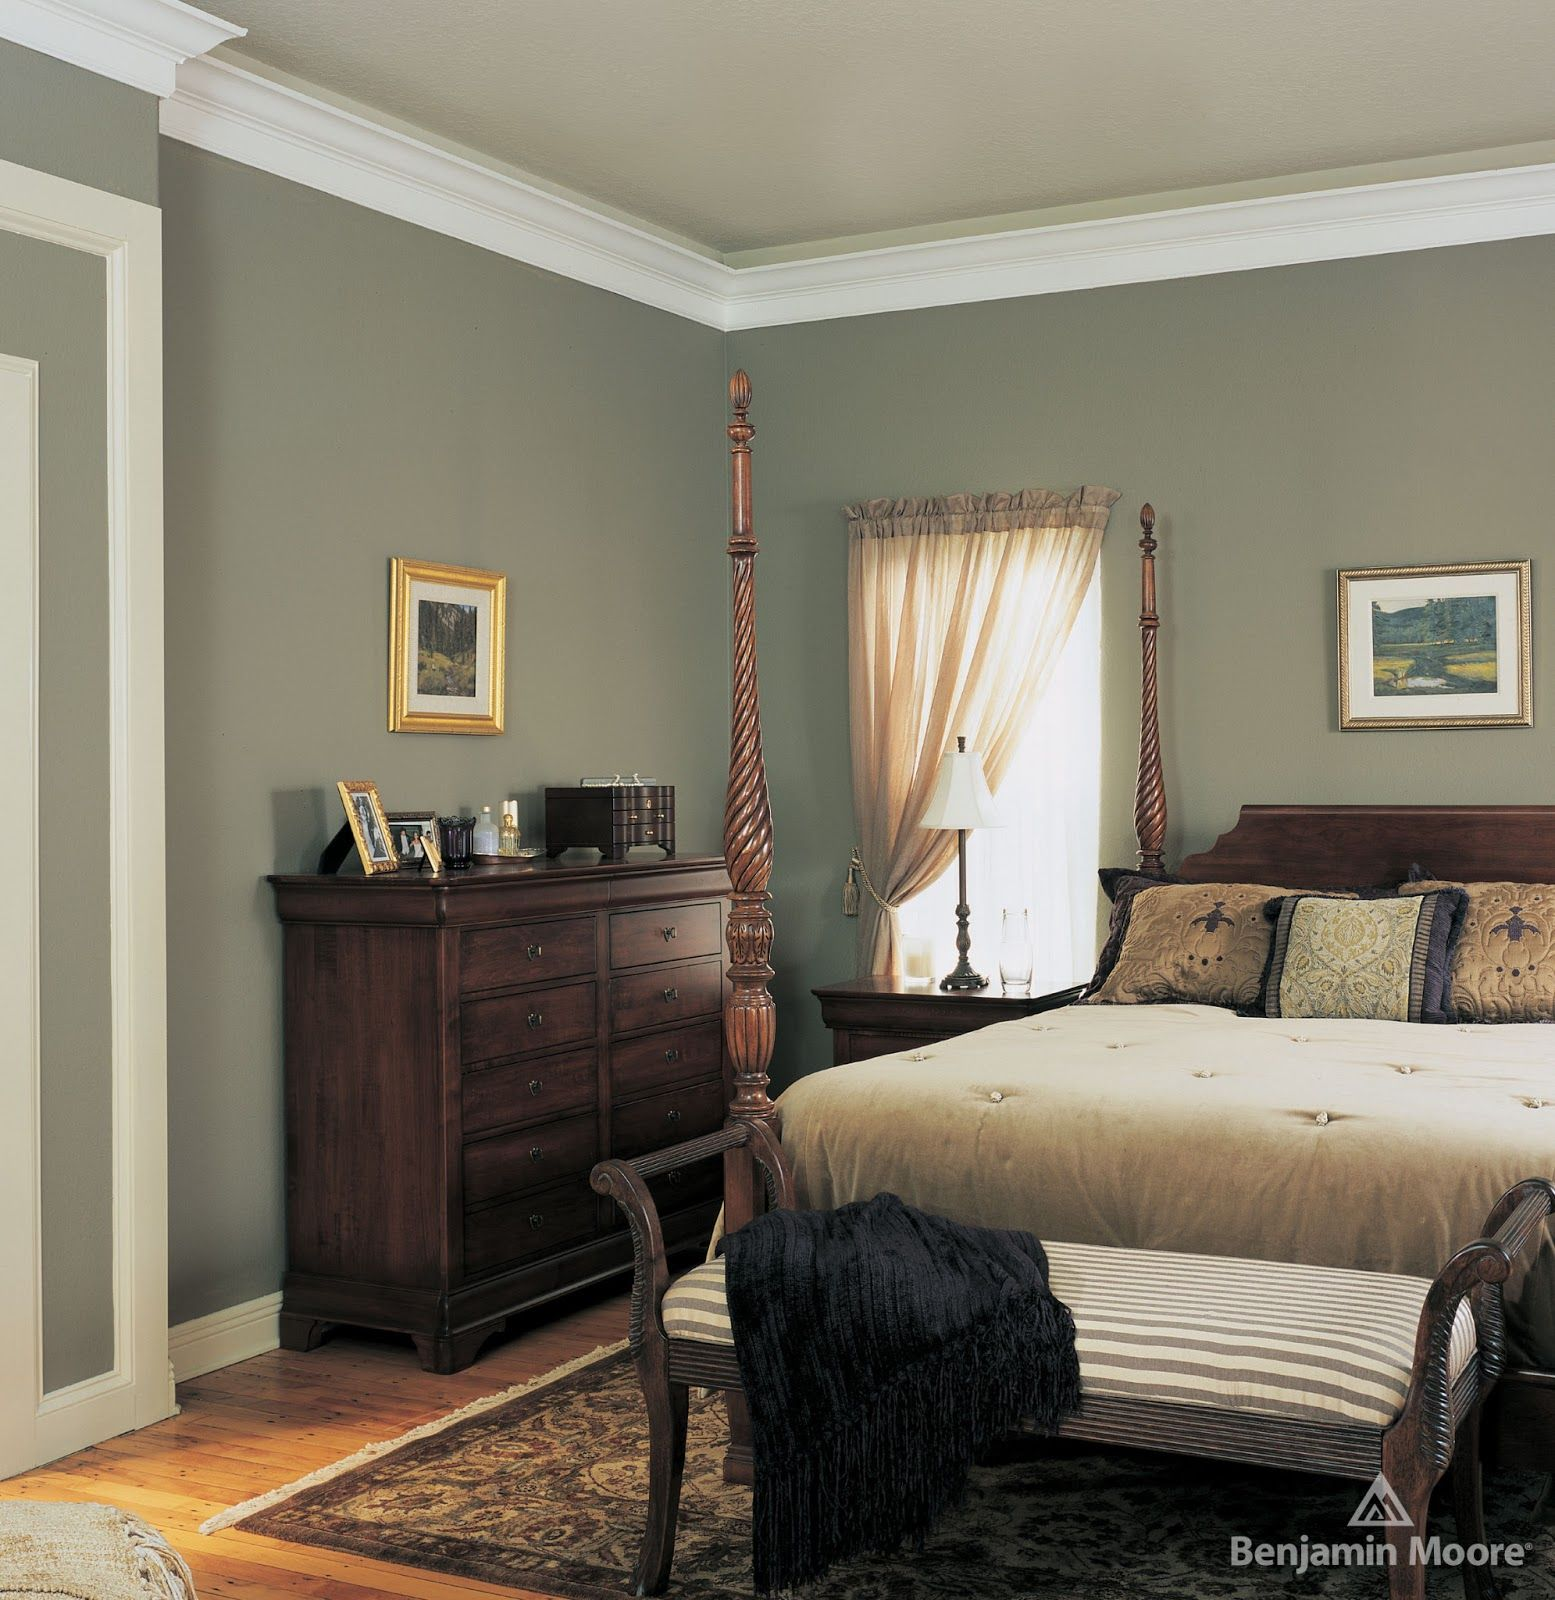 Benjamin Moore Colors For Your Living Room Decor: Factory Paint & Decorating: Benjamin Moore Regal Select